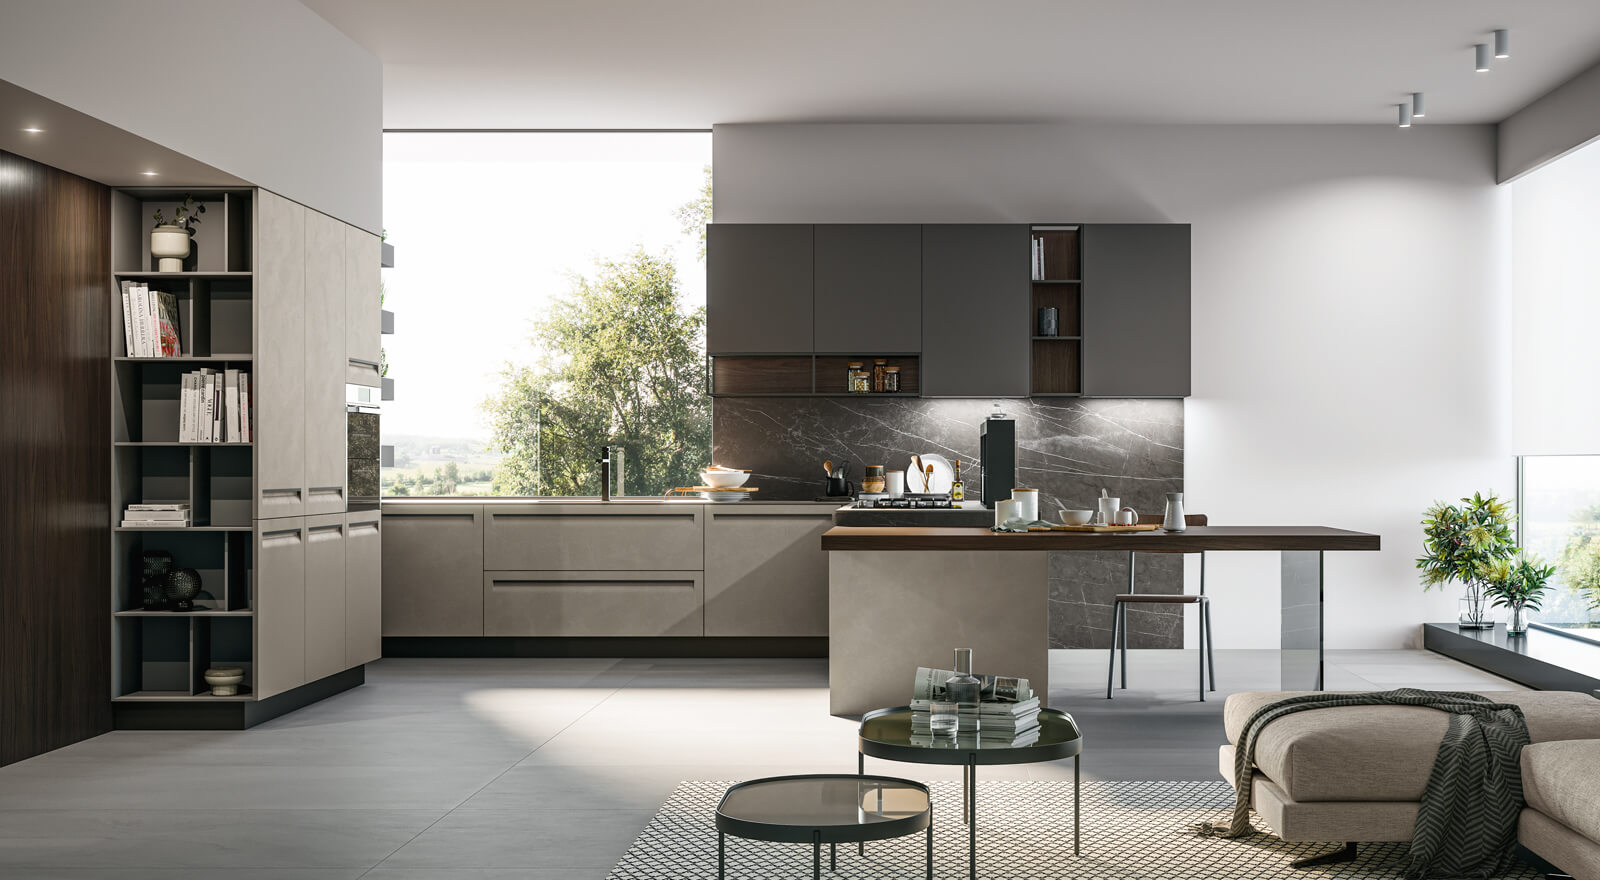 Angolo Bar Arredamento arredo3 kitchens - modern and classic kitchens made in italy